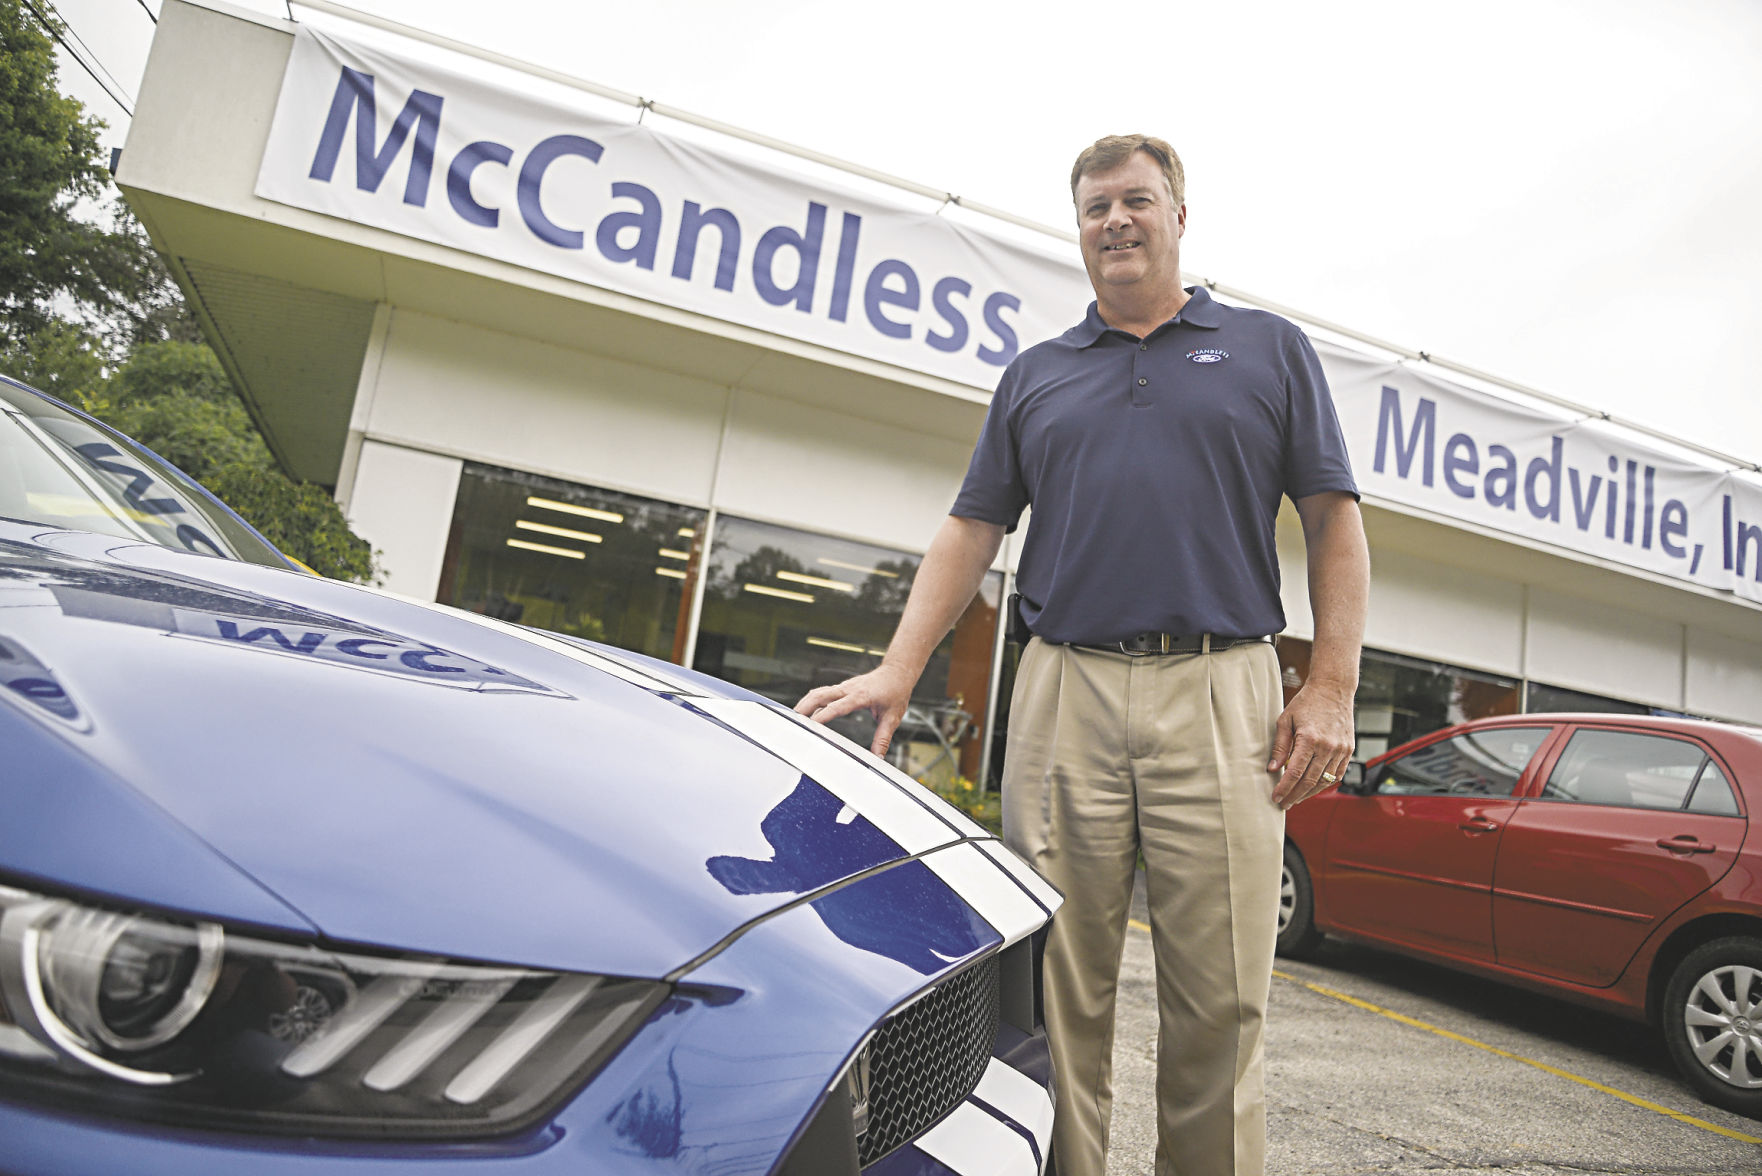 Greg McCandless, The New Owner Of The Former Weber Harris Ford, Stands Near  A Mustang In The Front Lot Of McCandless Ford.